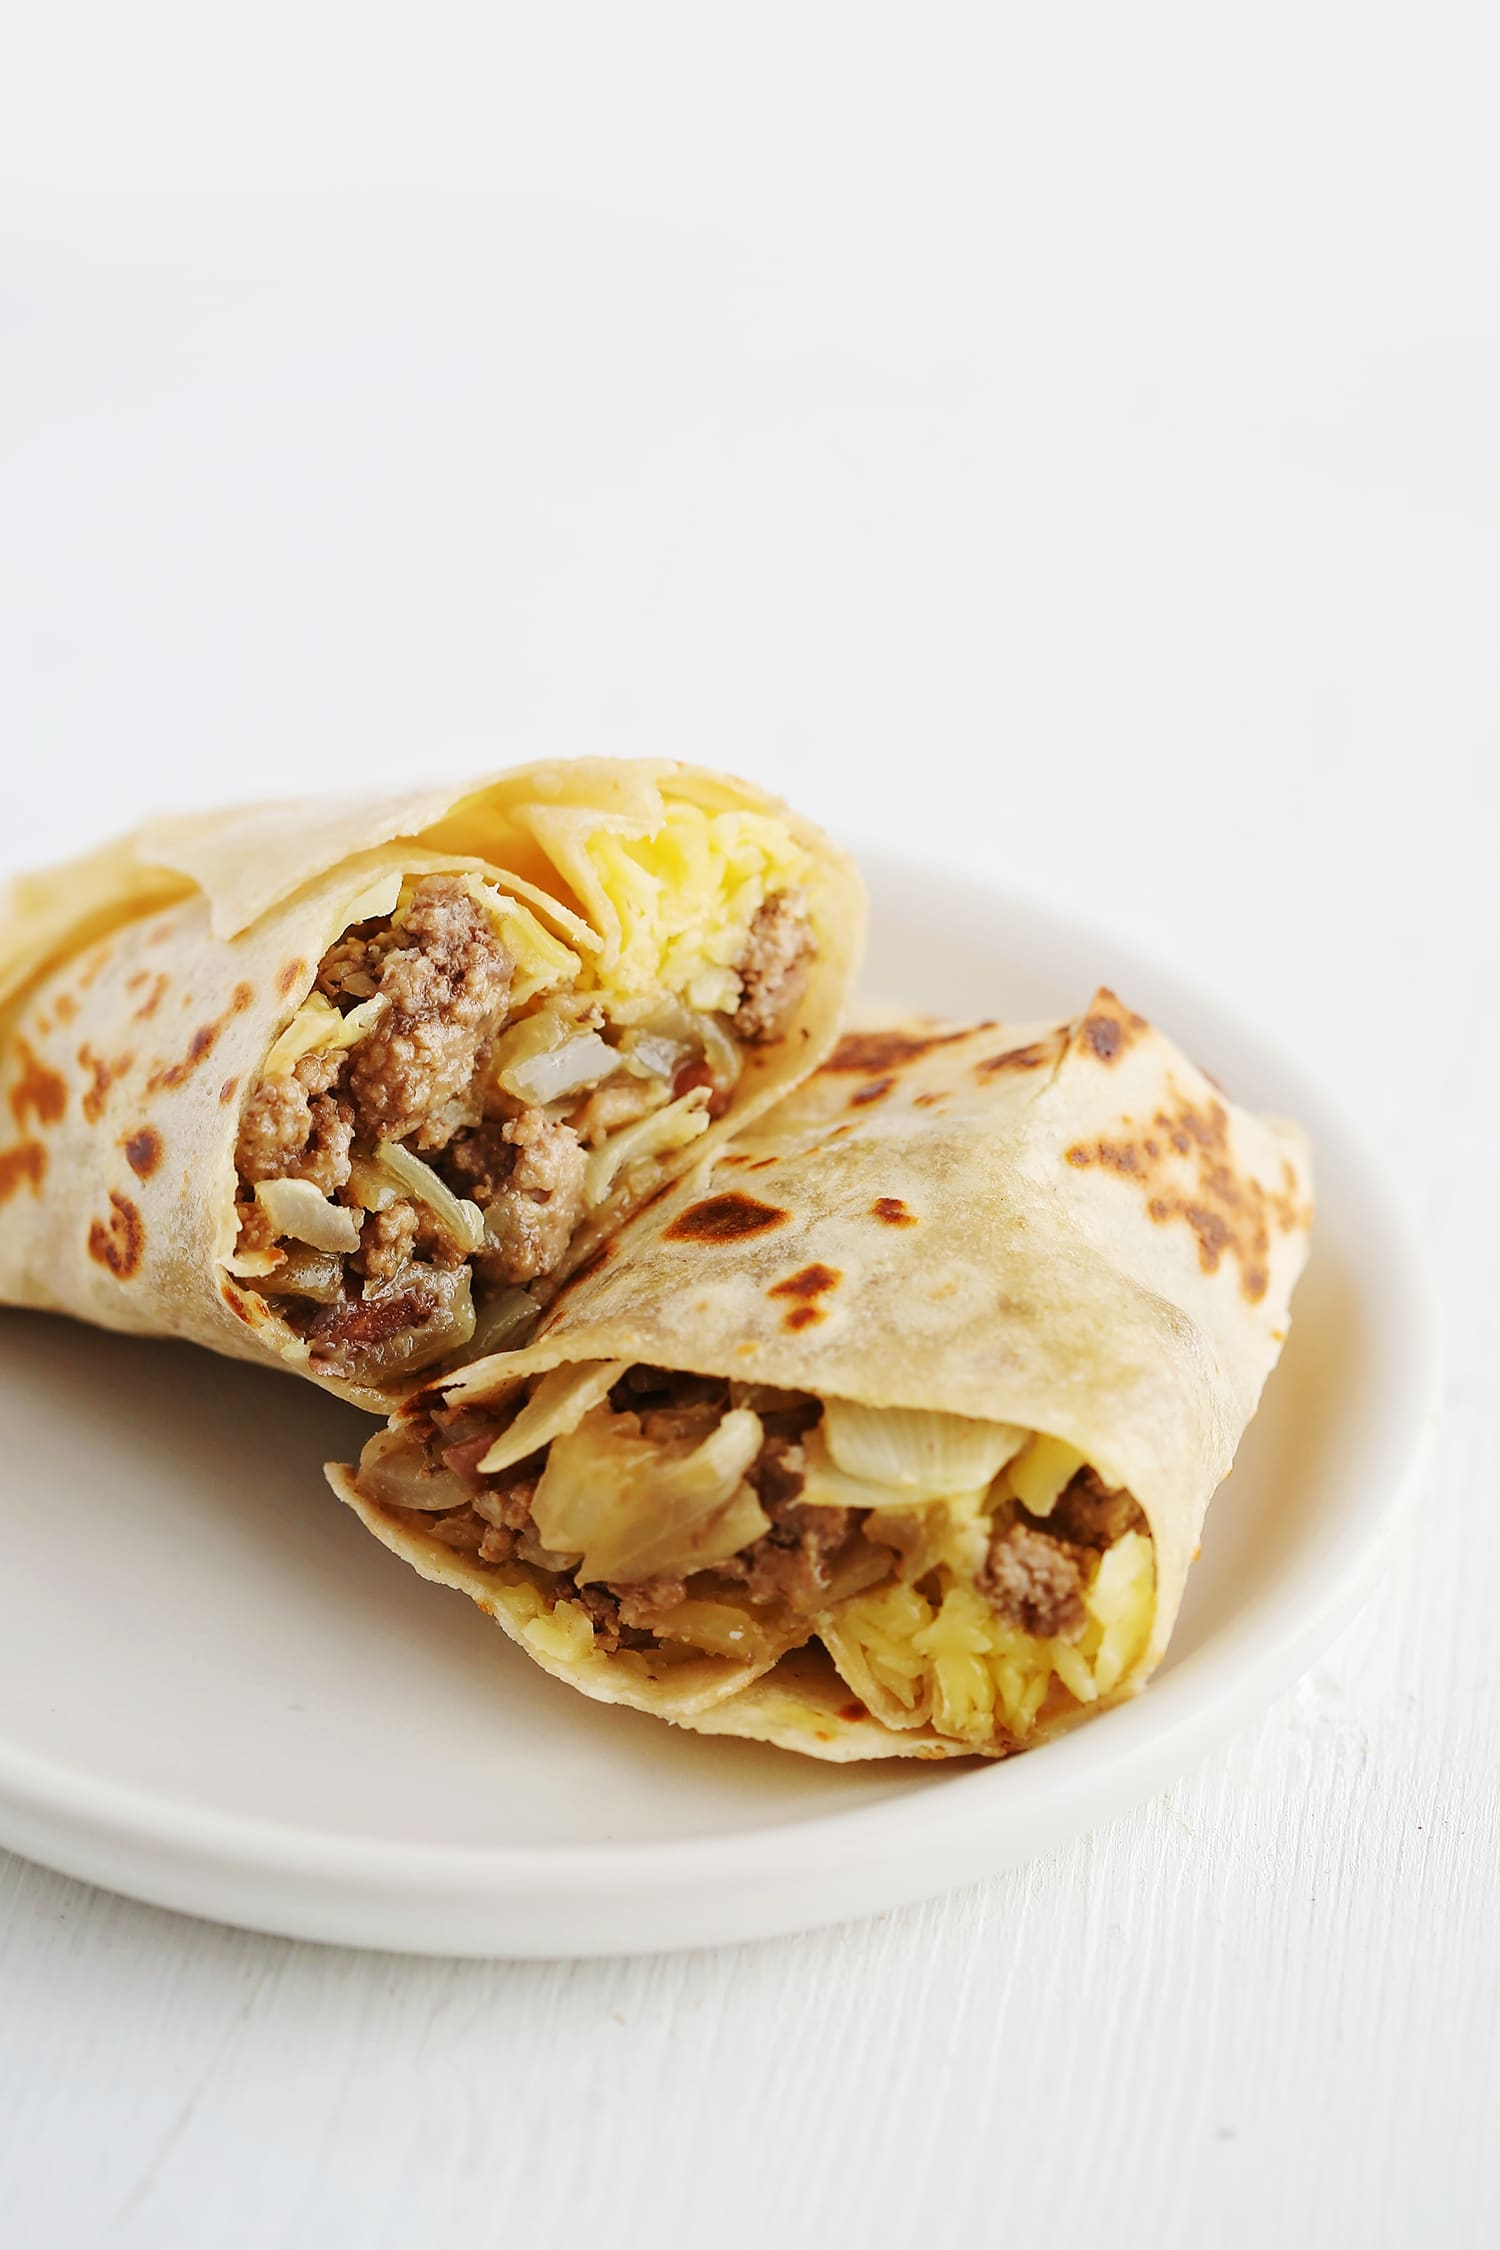 Stuffed Tortilla with Beef and Sweet Onions on the white plate